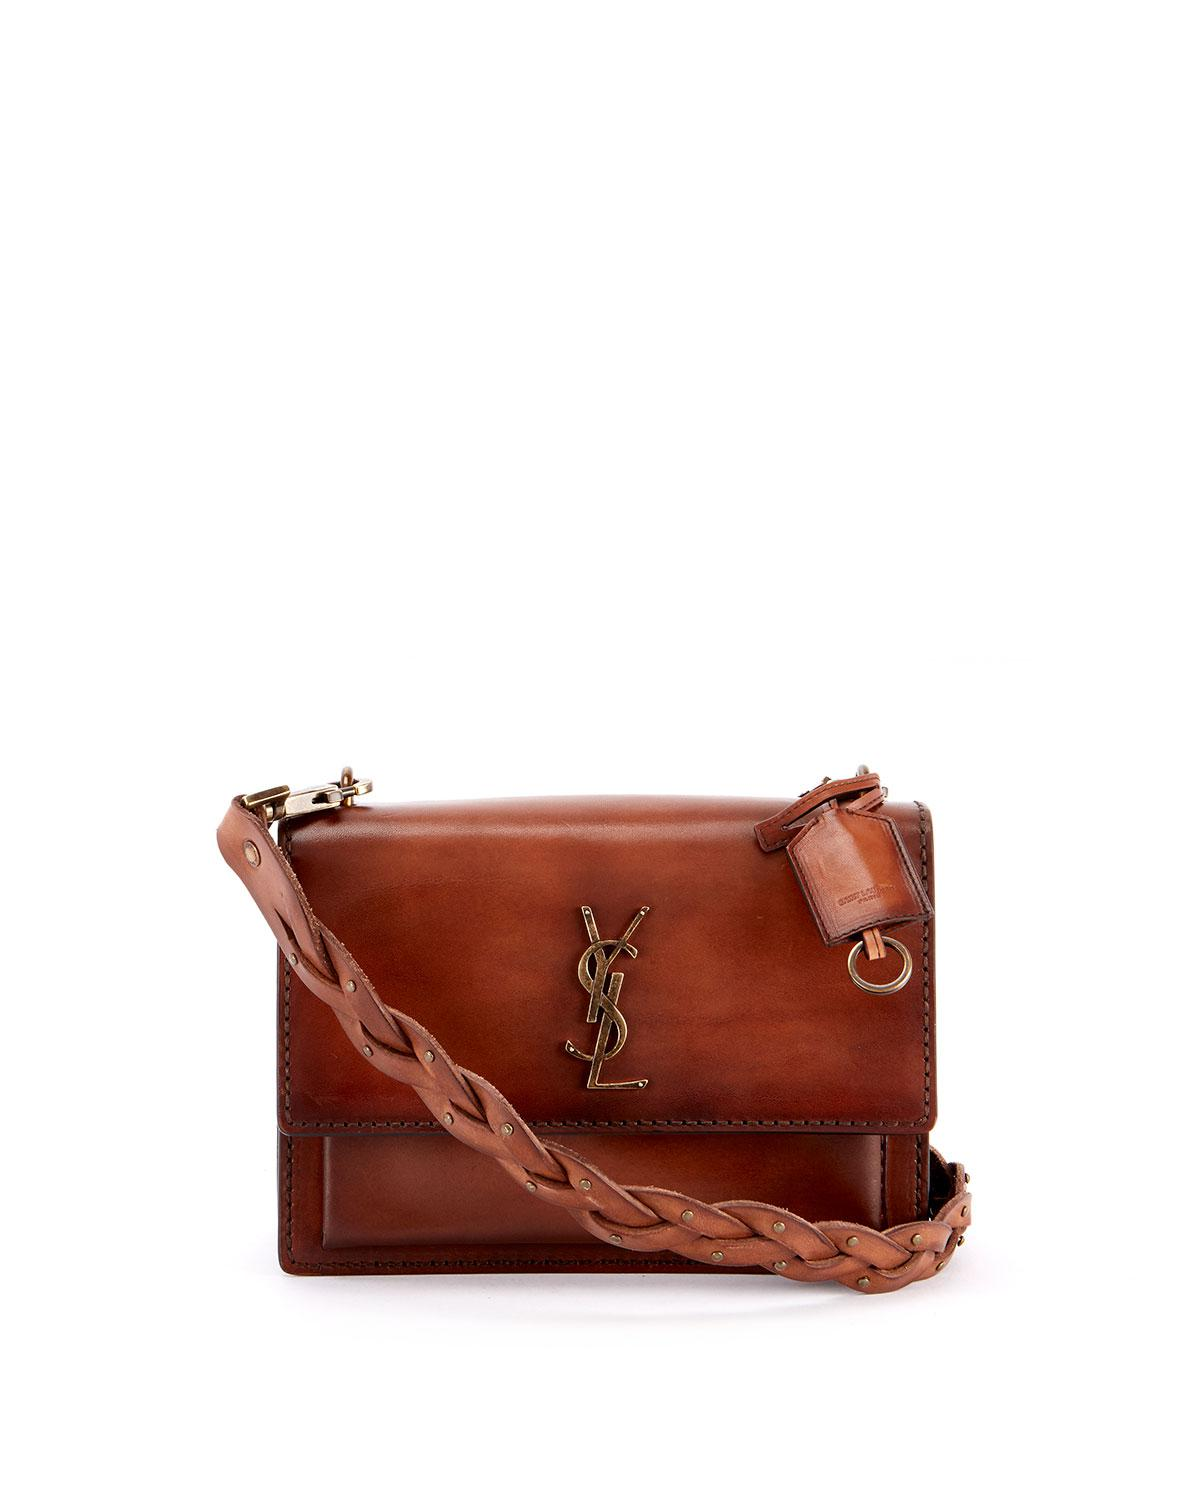 fa14e3c4d4 Saint Laurent. Women s Brown Sunset Medium Ysl Monogram Flap Shoulder Bag  ...